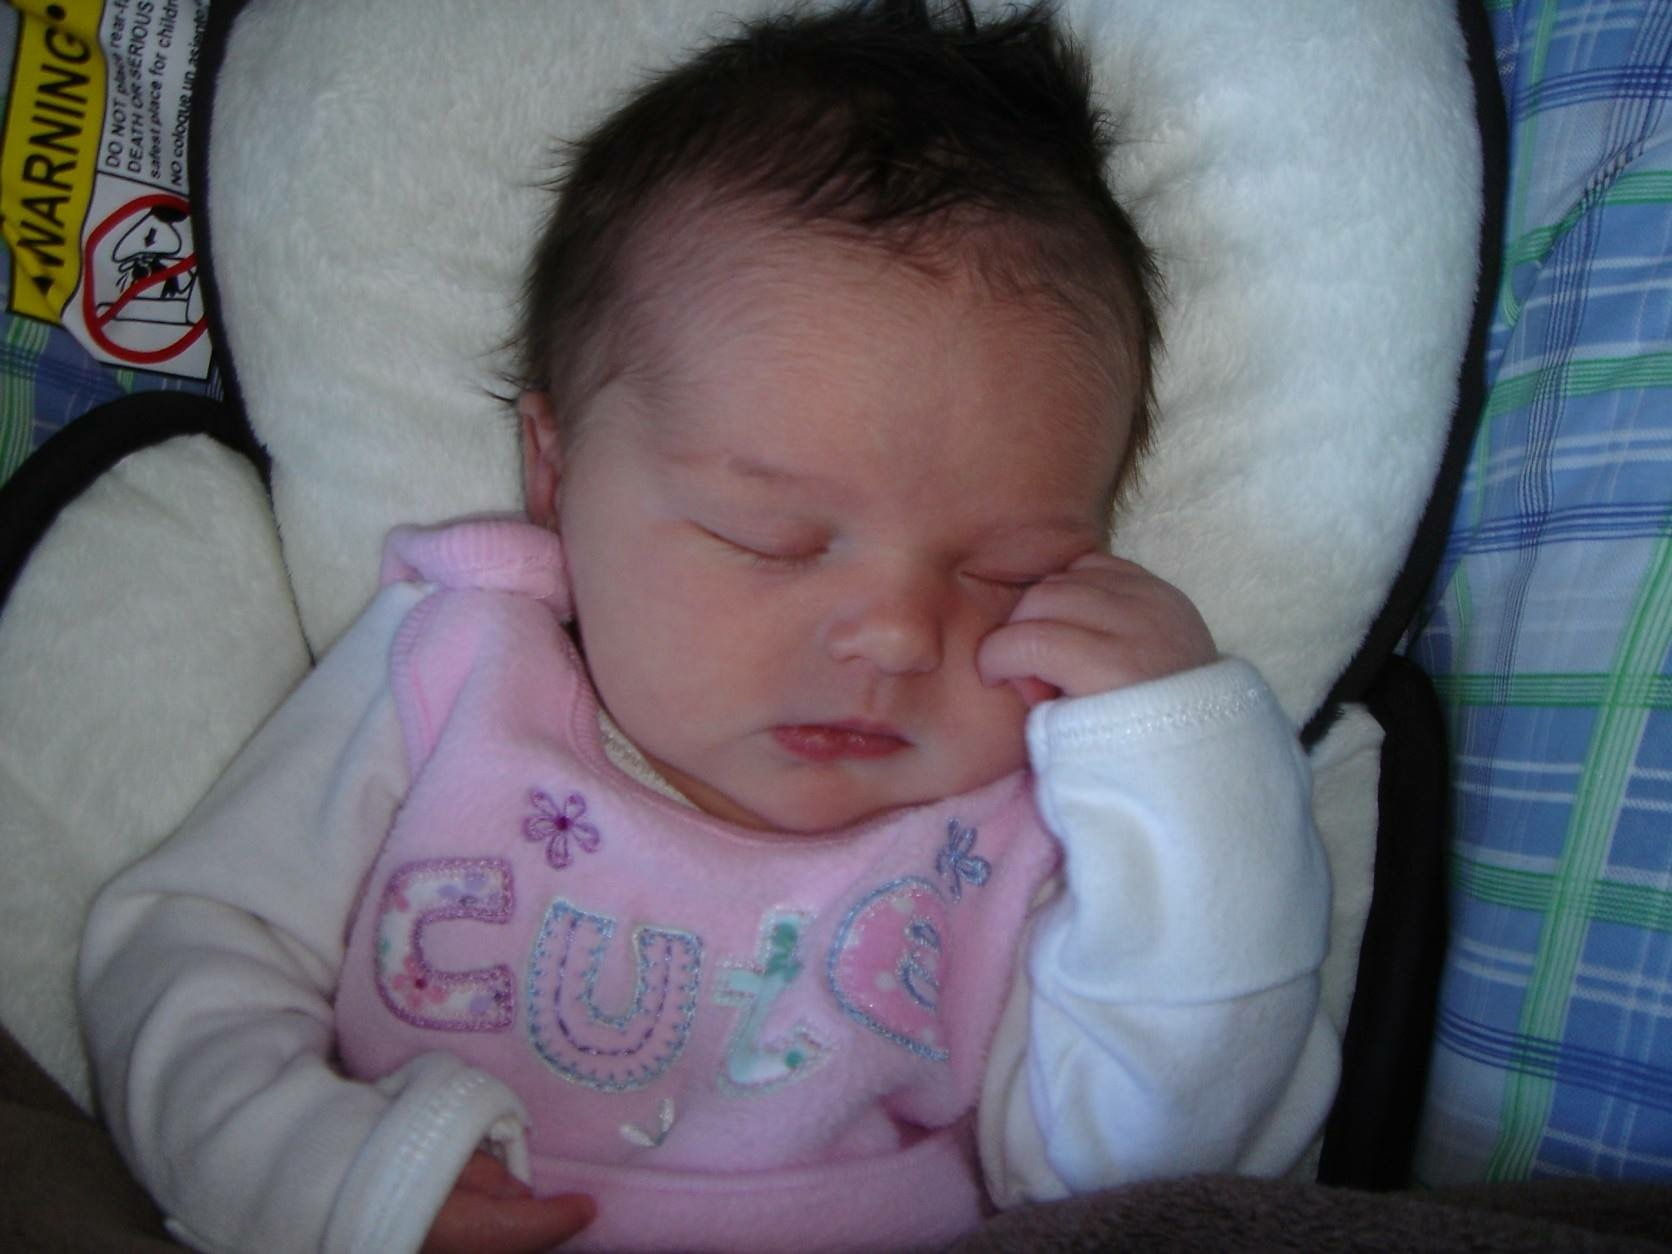 Our sweet baby Alice the day we brought her home from the hospital, April 2008